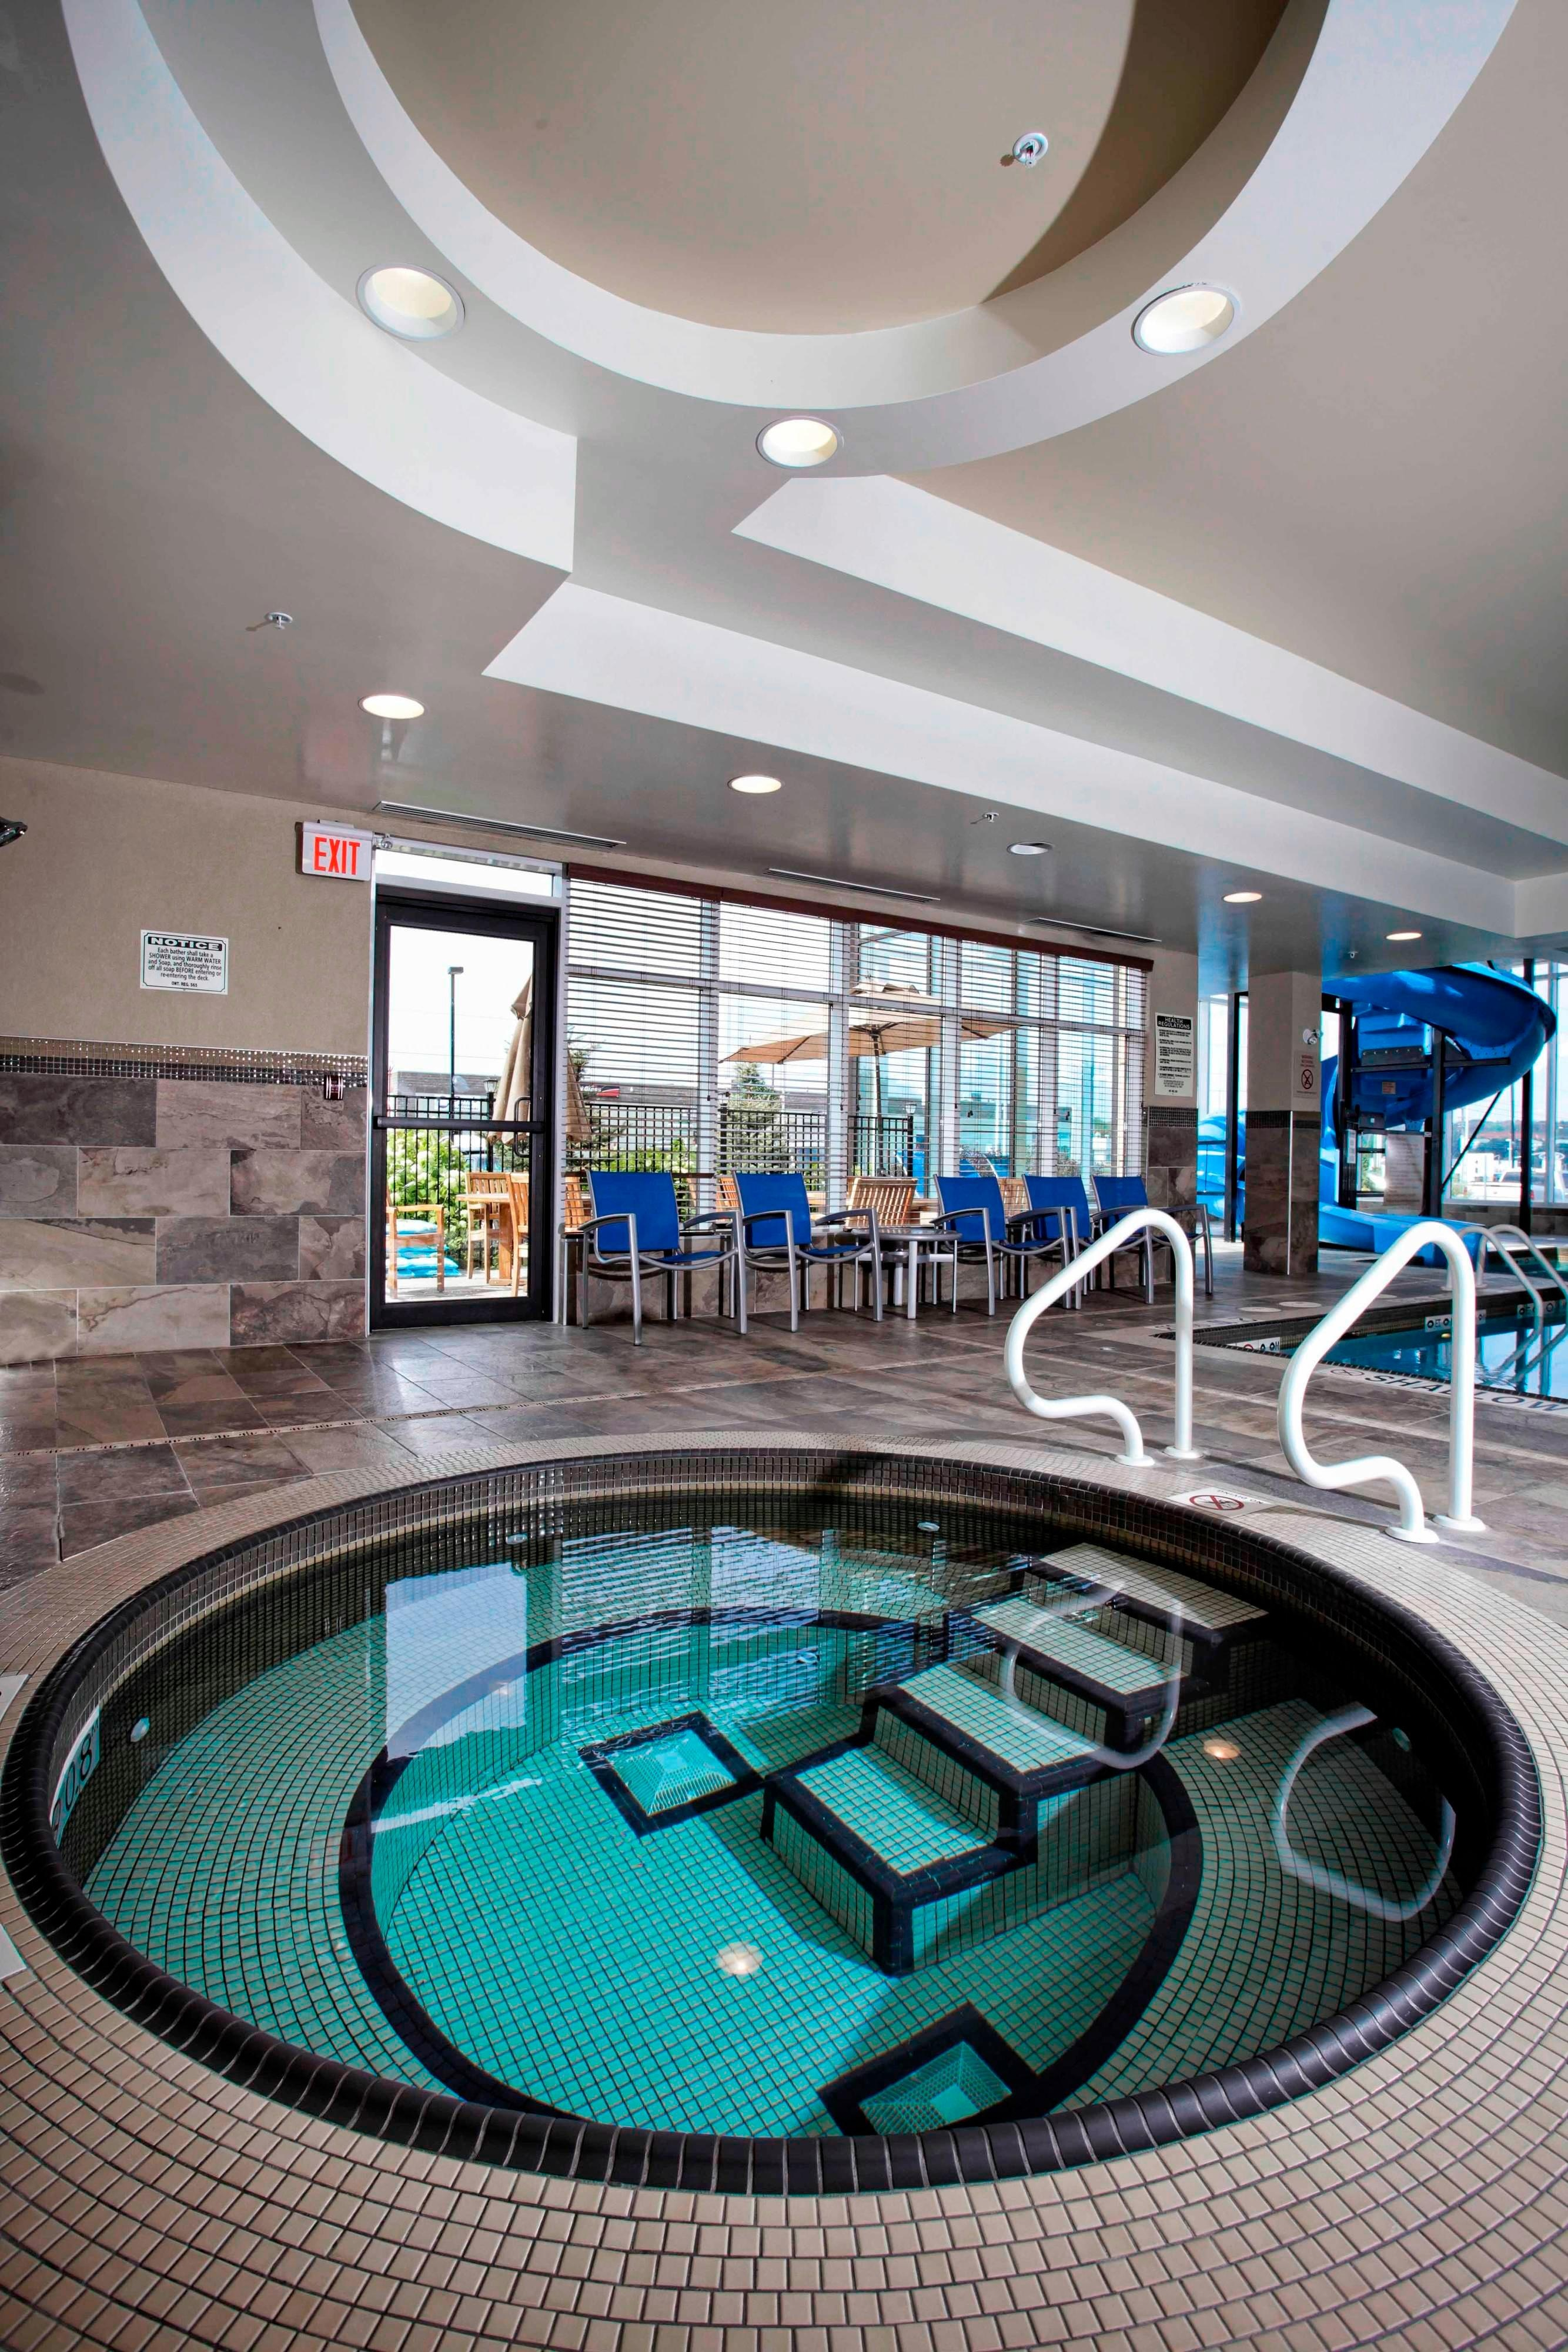 TownePlace Suites Whirlpool